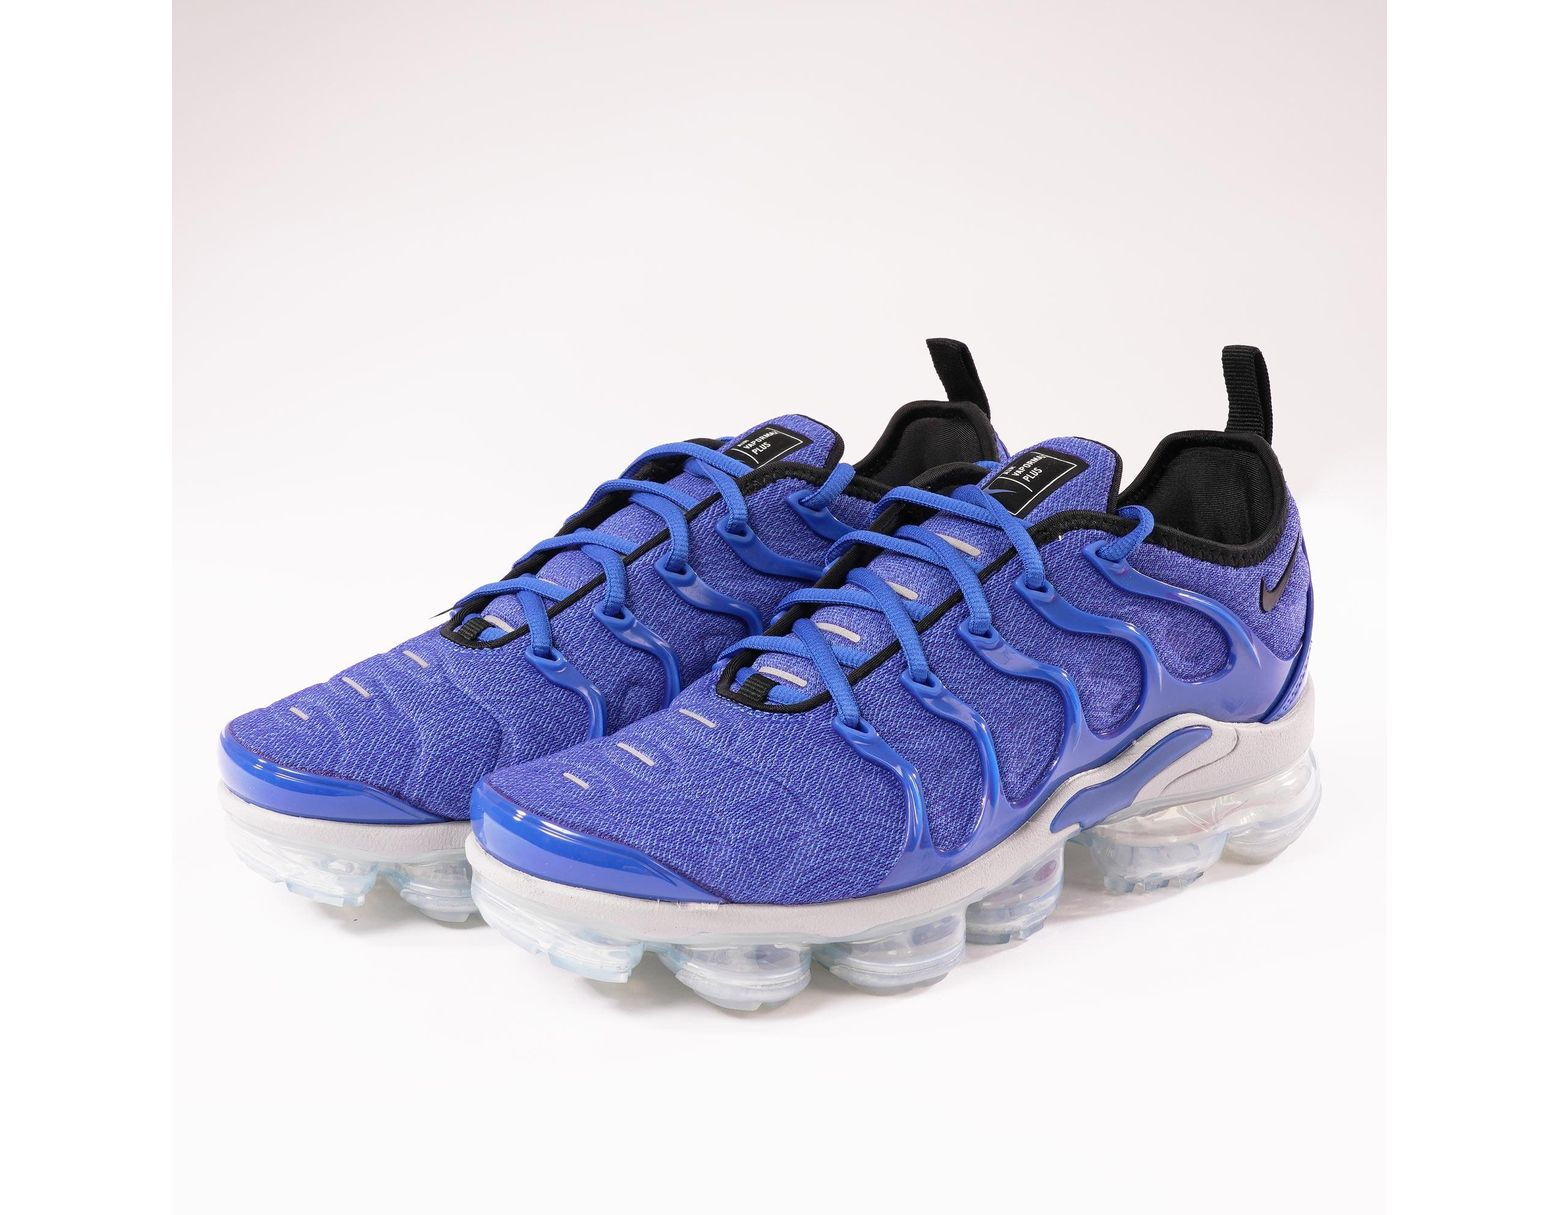 efb667d04aac Nike Air Vapormax Plus in Blue for Men - Save 29% - Lyst